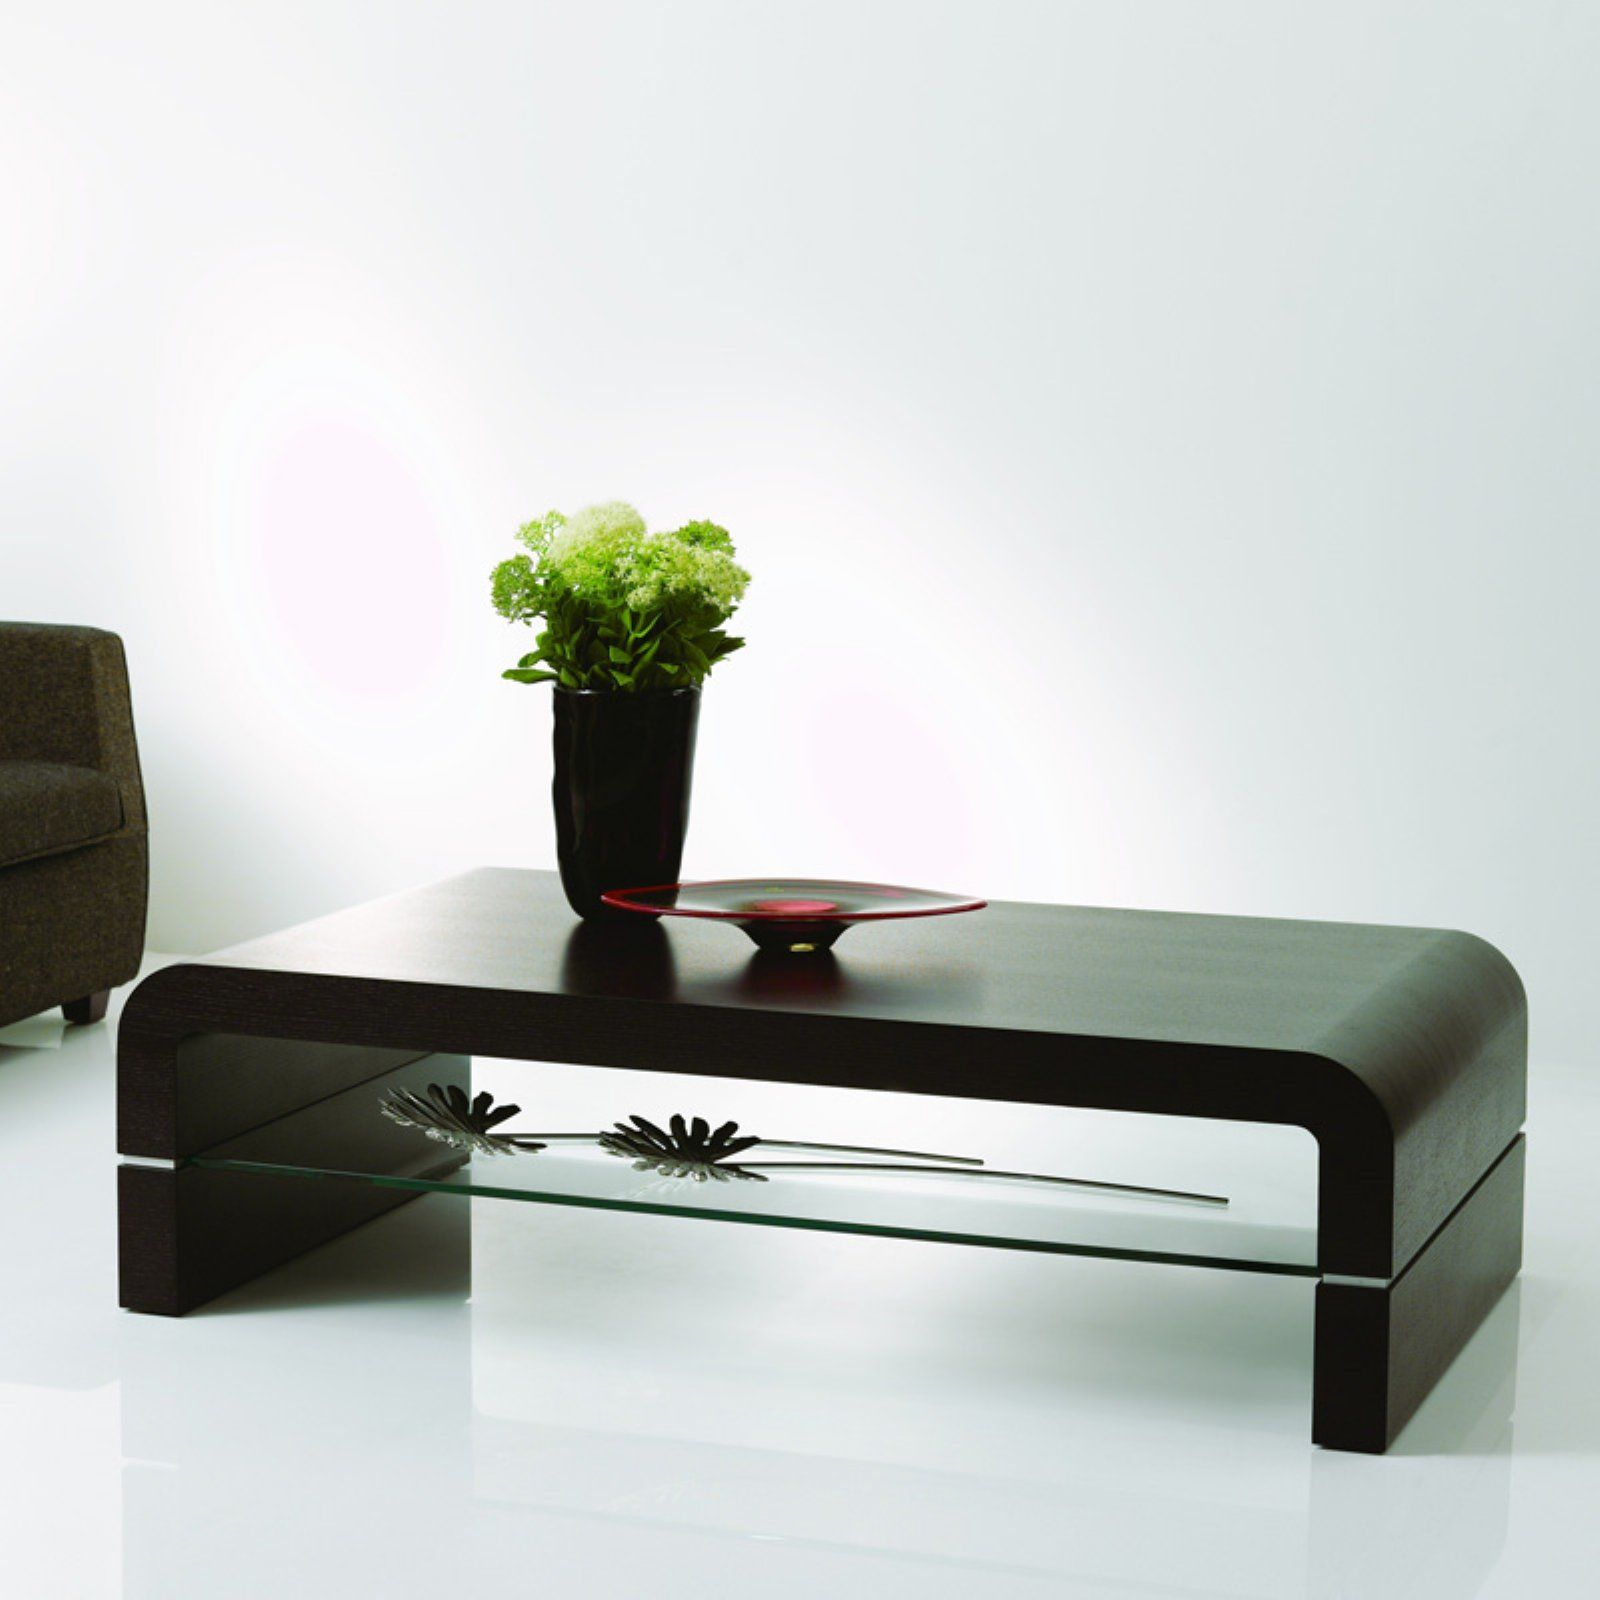 J M Furniture 690a Coffee Table In 2020 Coffee Table Modern Coffee Tables Coffee Table Design [ 1600 x 1600 Pixel ]